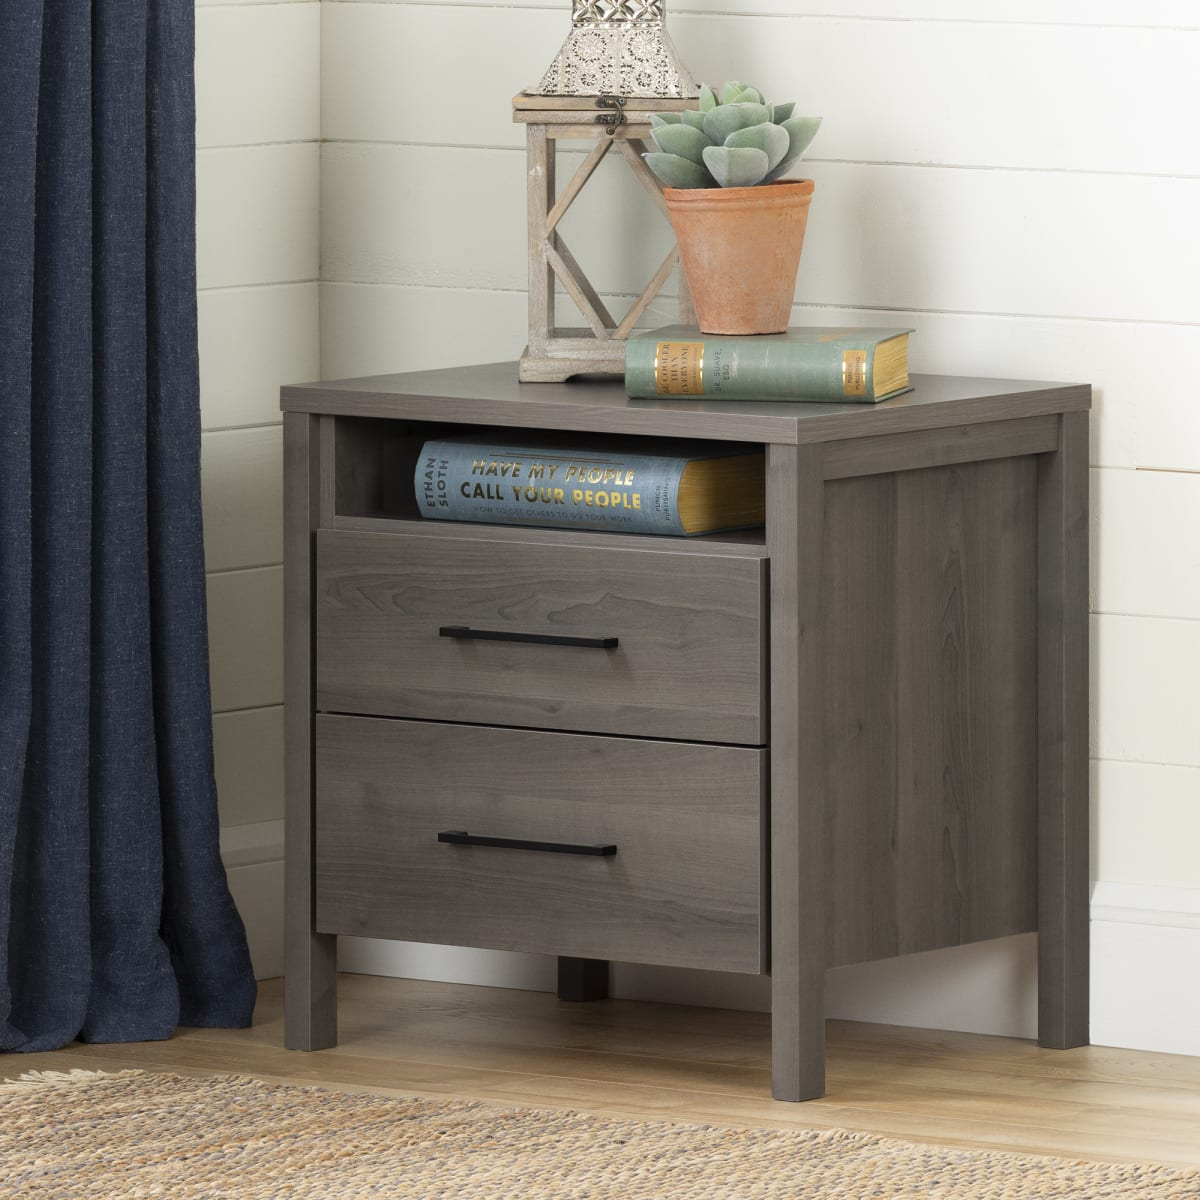 Gravity 2 Drawer Nightstand Nightstand Master Bedroom Furniture Products South Shore Furniture Ca Furniture For Sale Designed And Manufactured In North America